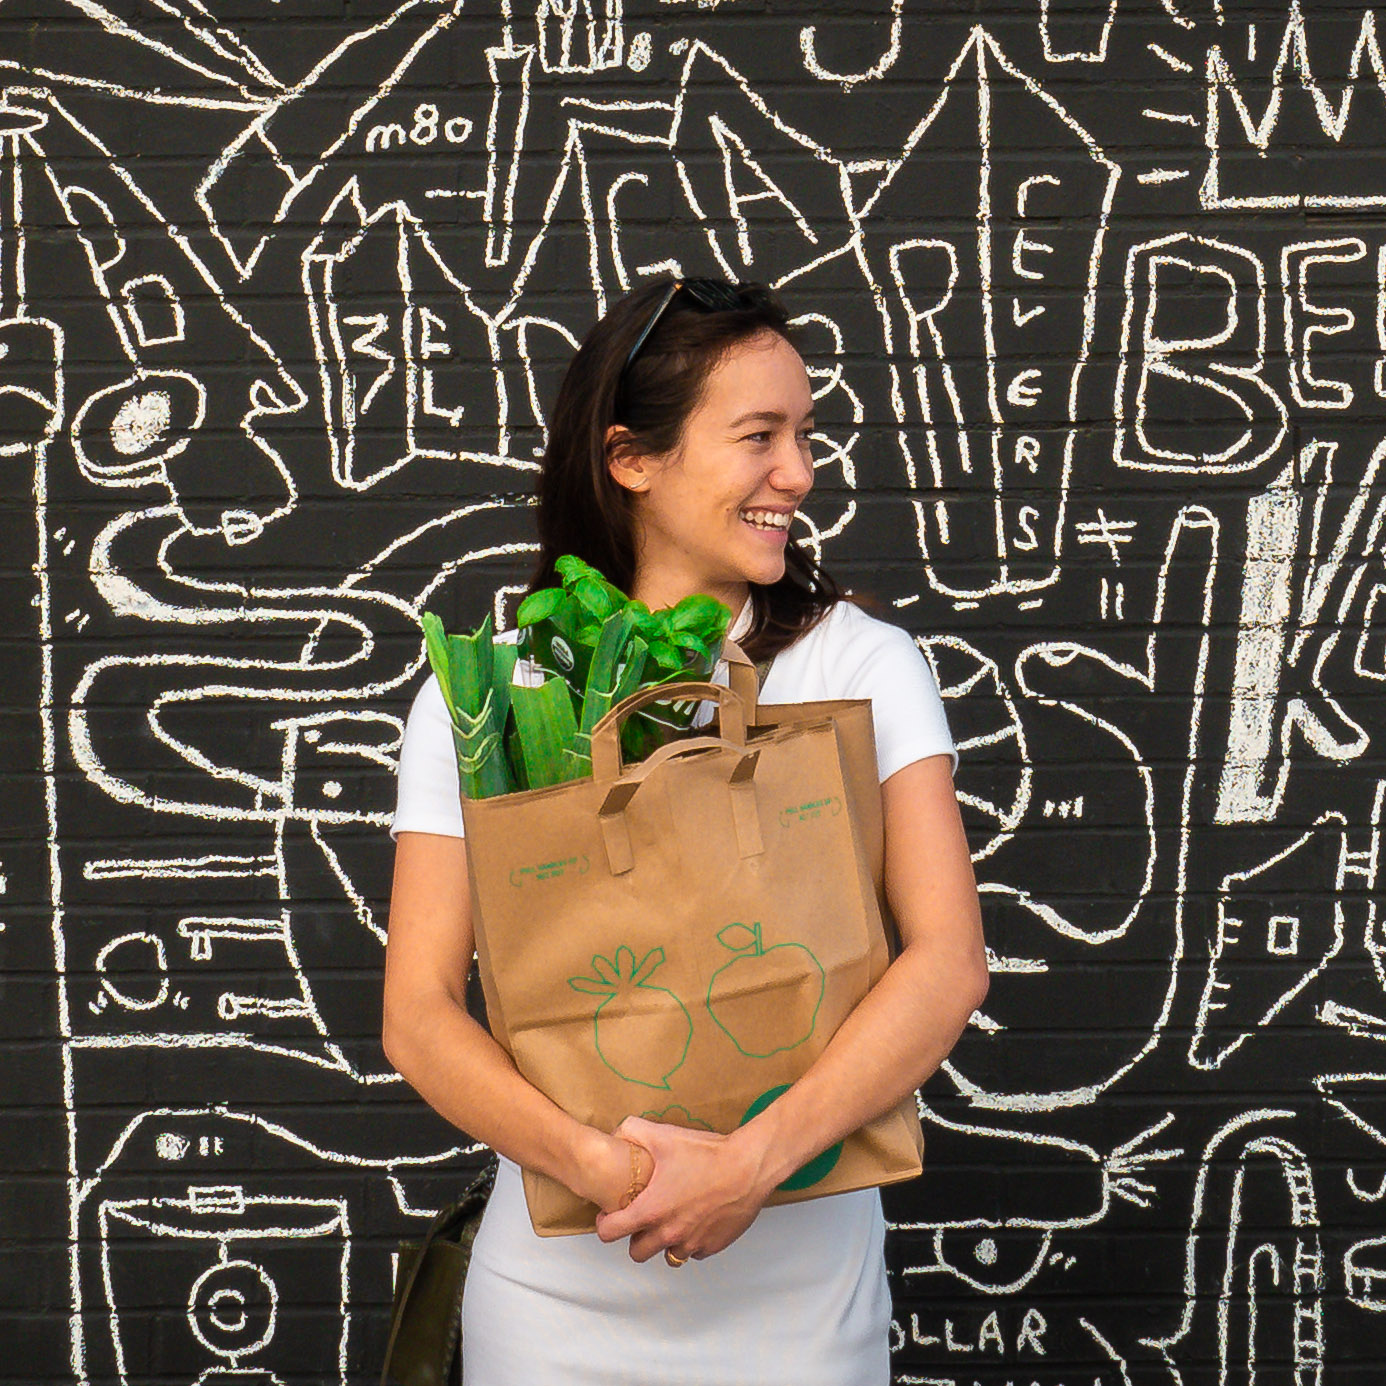 Mai-ly Tran, co-fondatrice de Plant and Stories